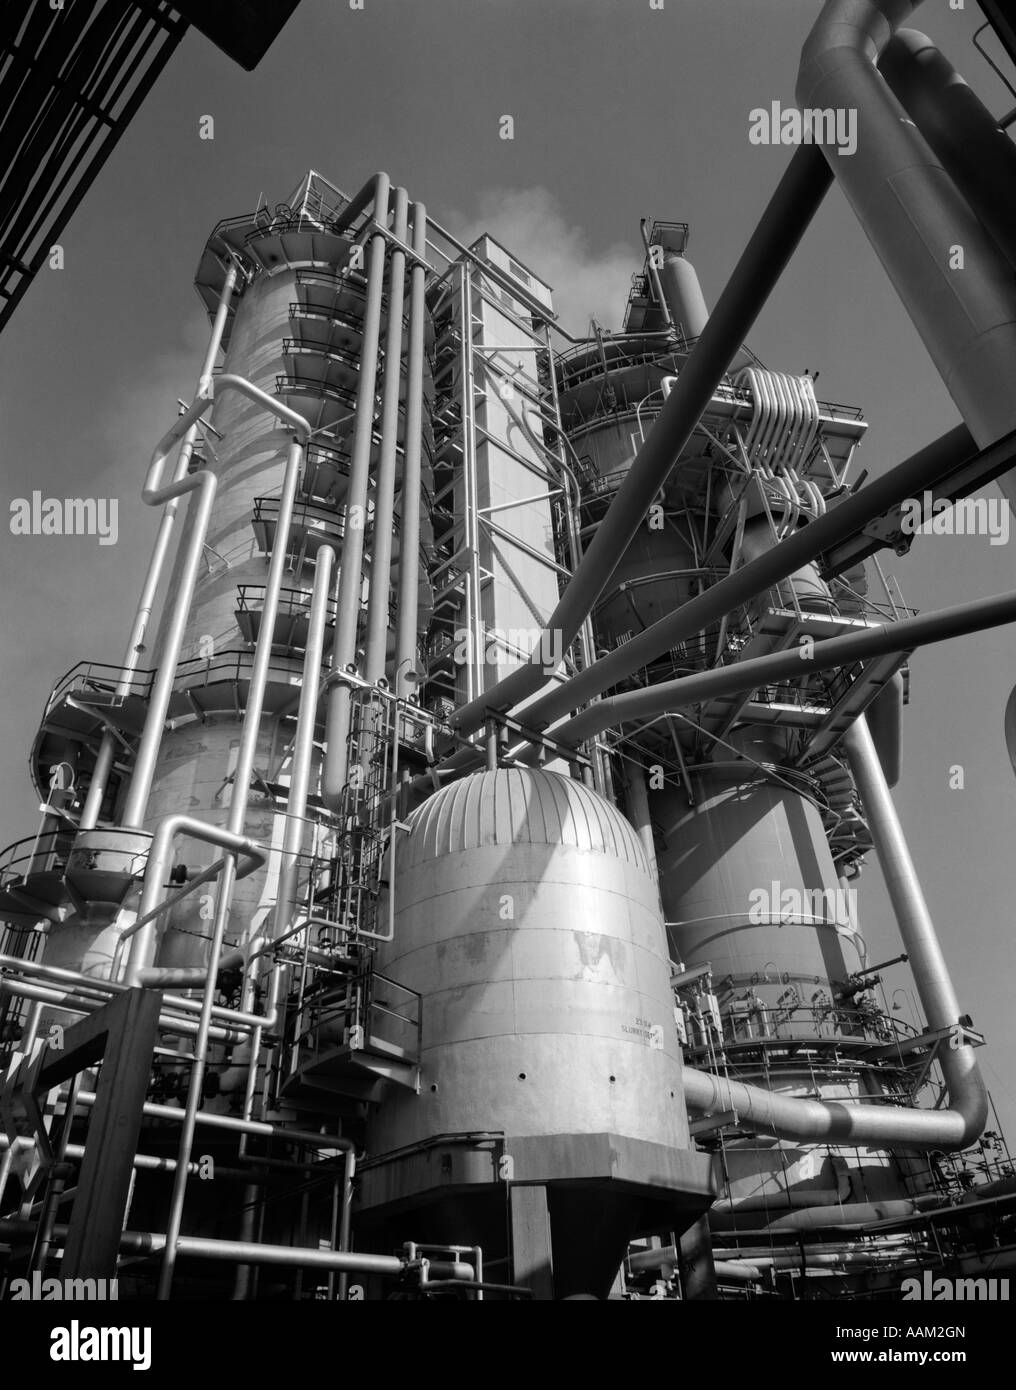 1960s LARGE MACHINERY AT OIL REFINERY - Stock Image